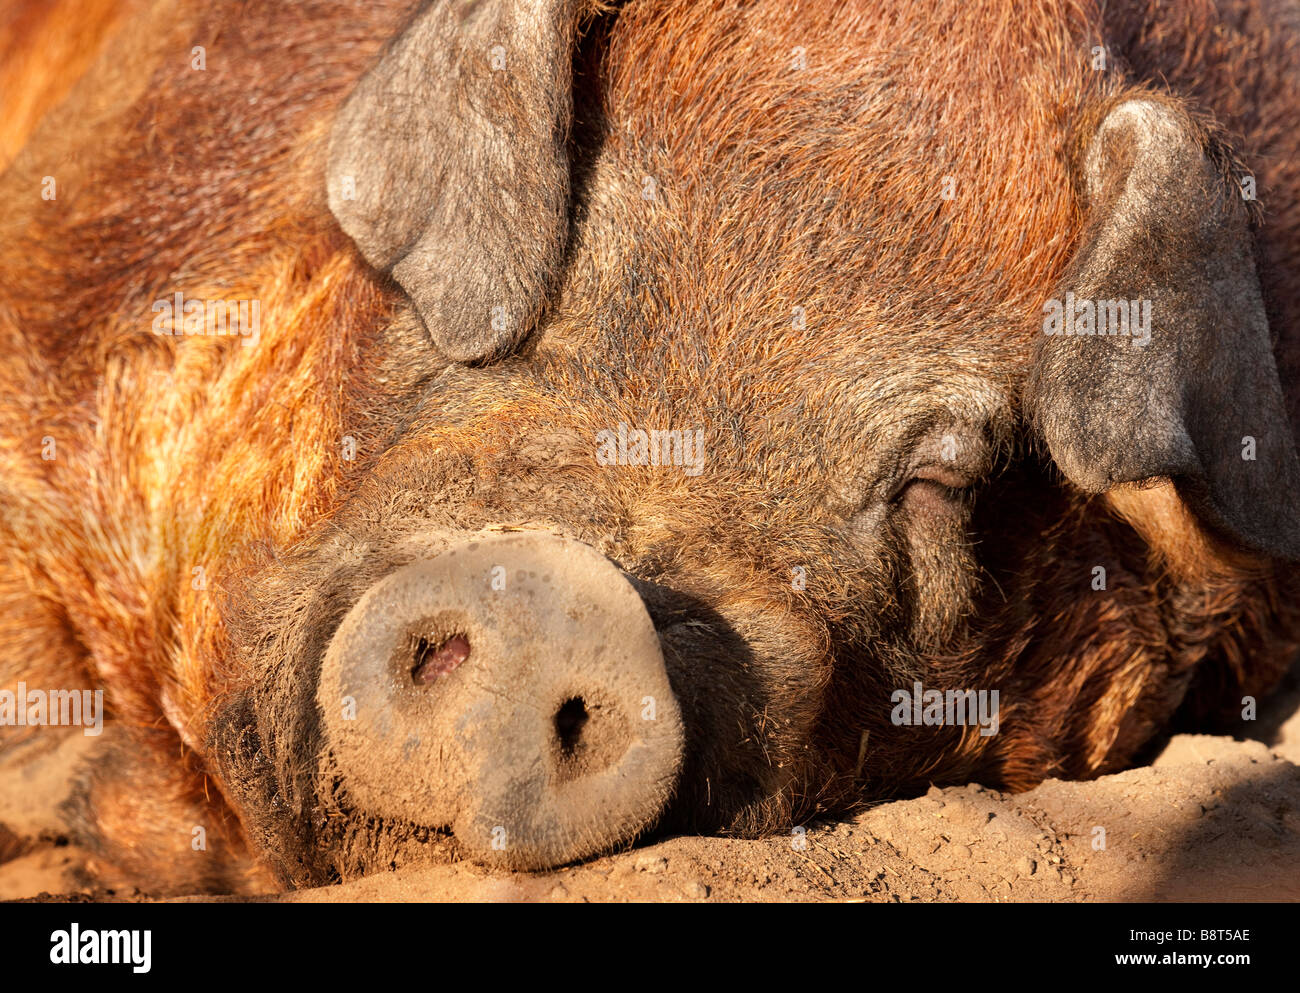 An adult pig sleeps outside in the afternoon sun. - Stock Image